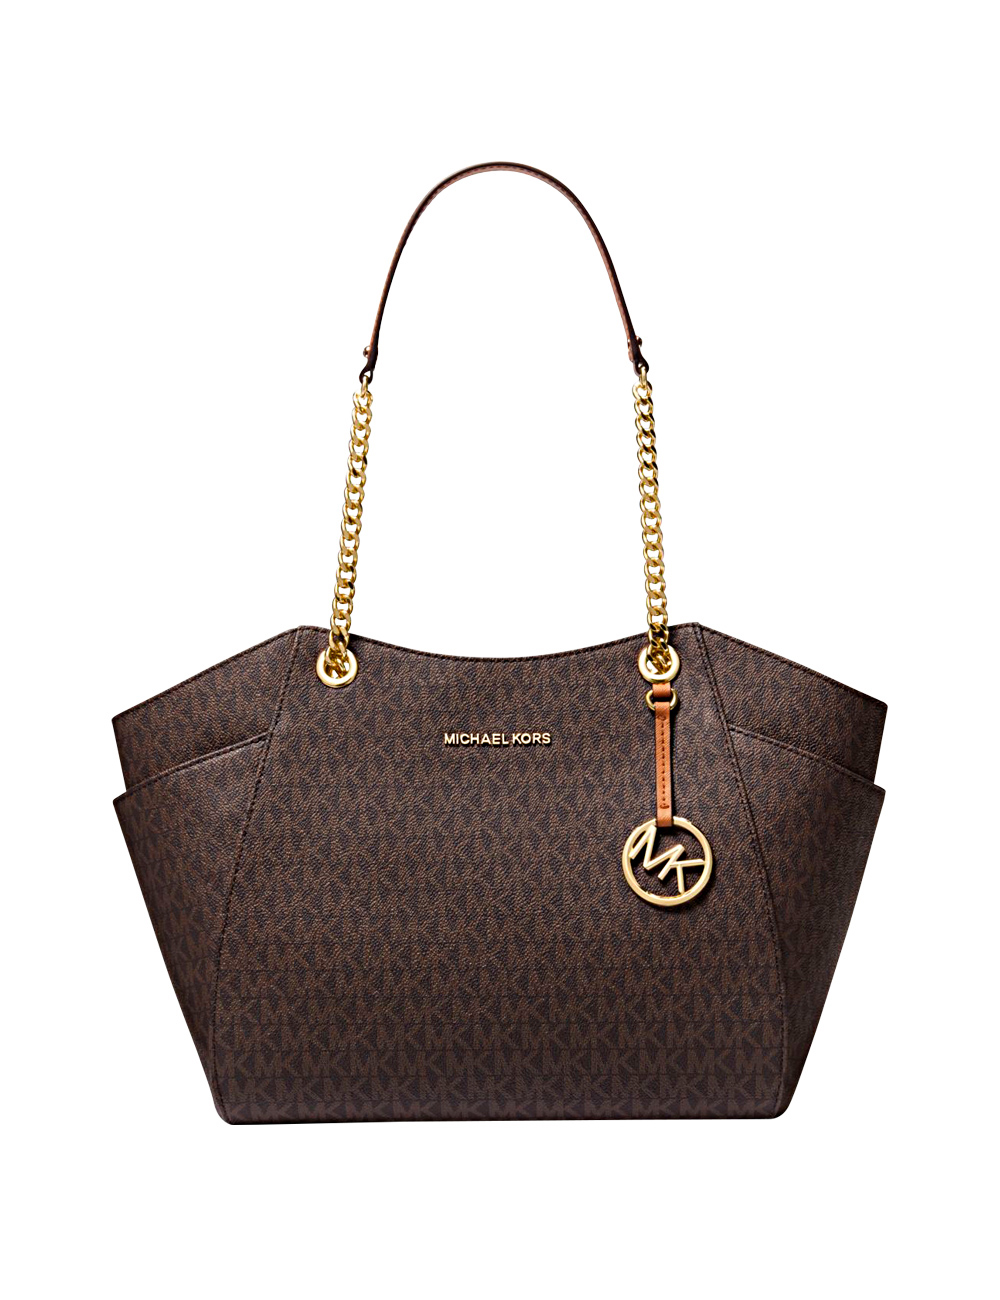 handtasche jet set tote michael kors braun. Black Bedroom Furniture Sets. Home Design Ideas